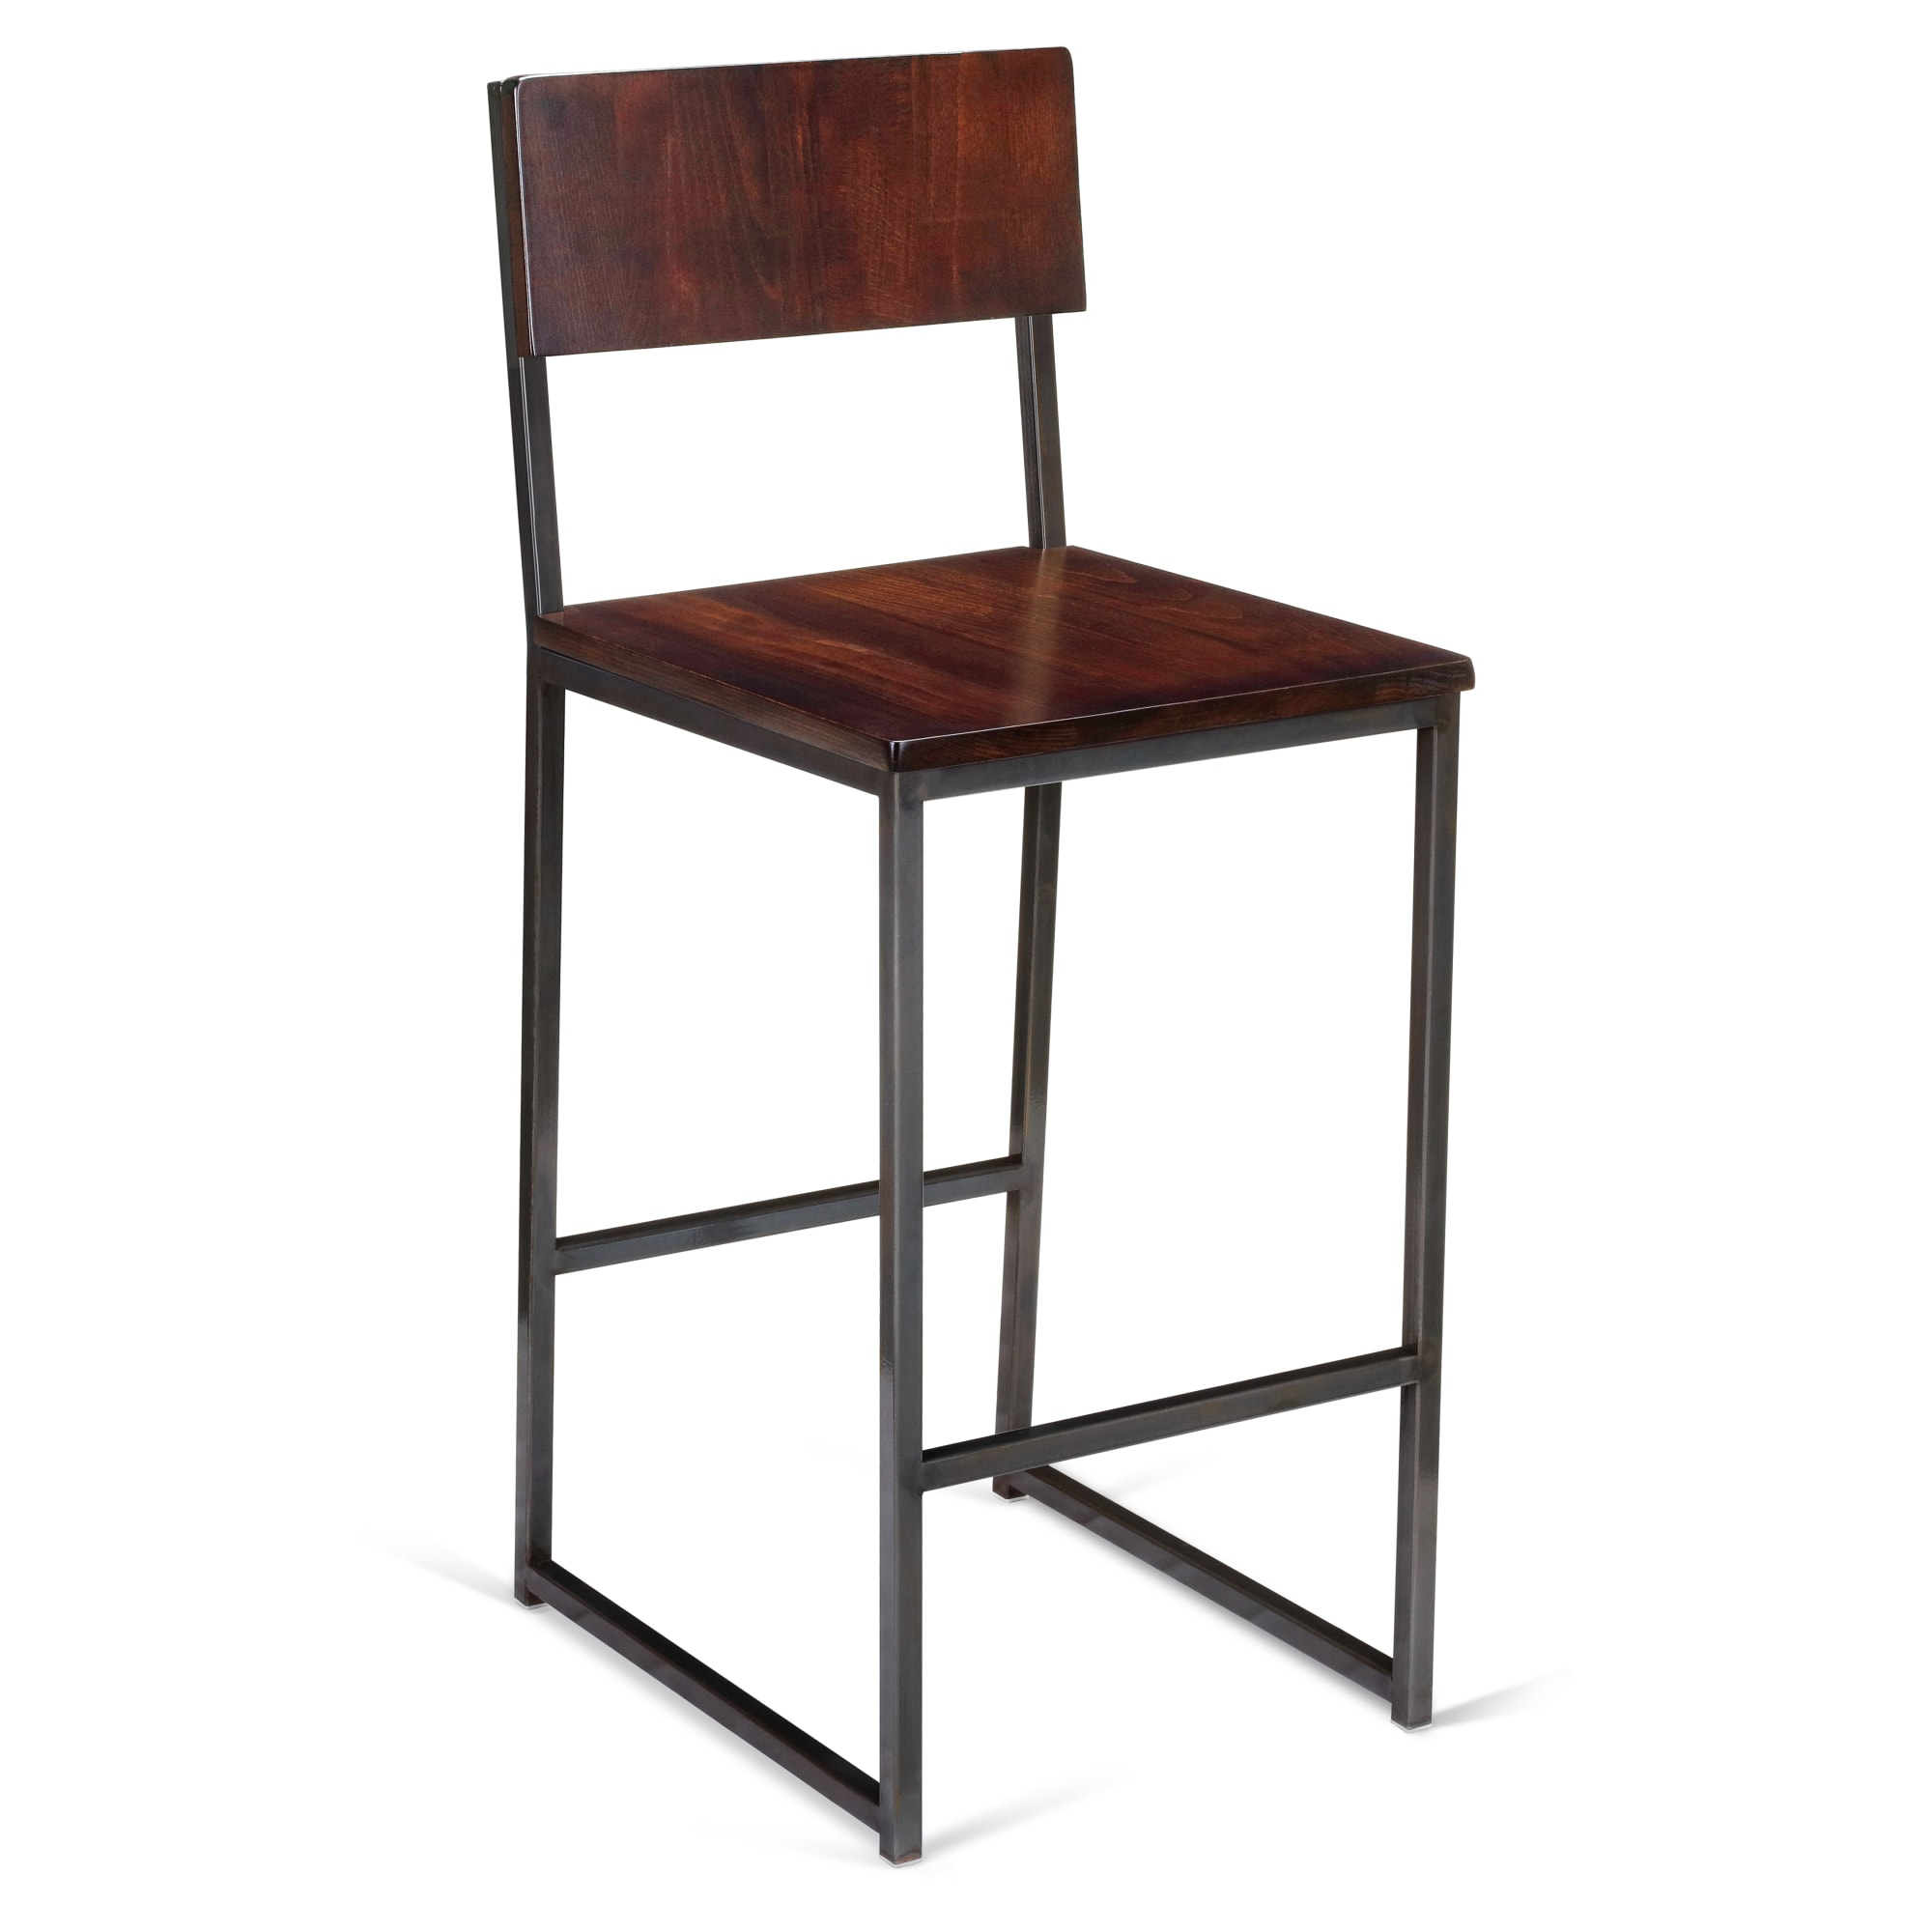 Industrial Series Metal Bar Stool with Wood Back with Industrial Series Metal Bar Stool with Wood Back